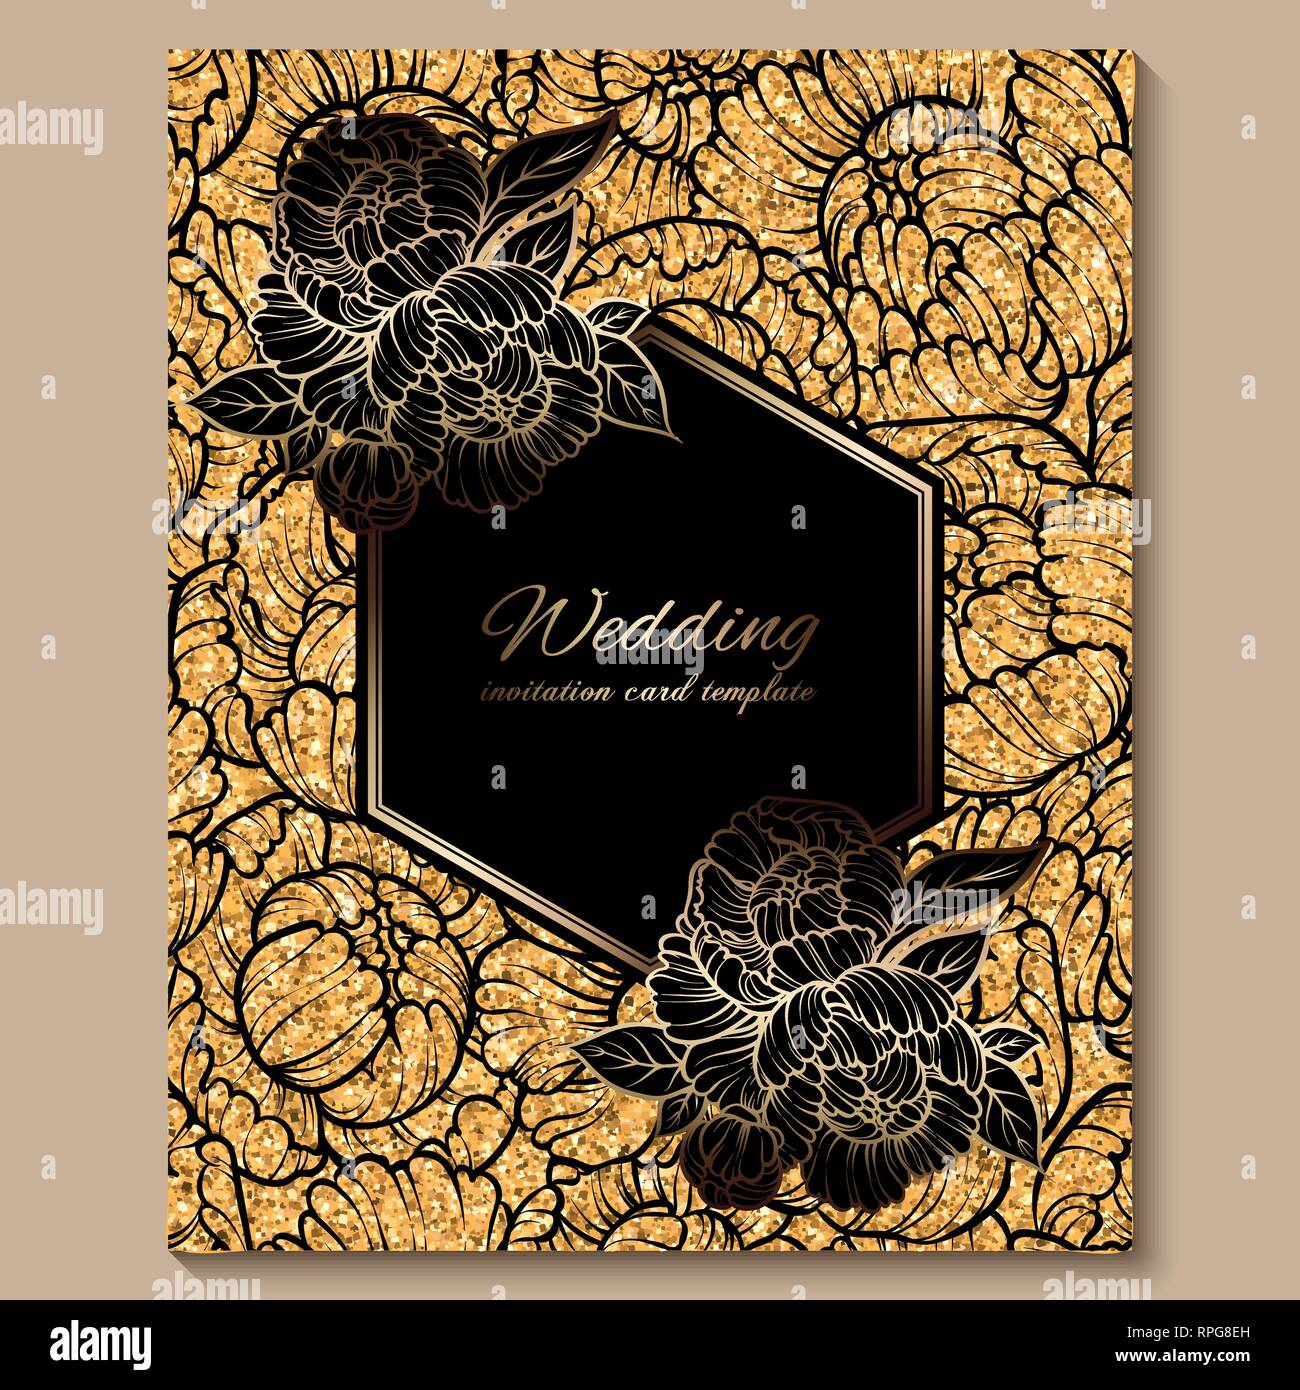 https www alamy com antique royal luxury wedding invitation card golden glitter background with frame and place for text black lacy foliage made of roses or peonies image237615129 html